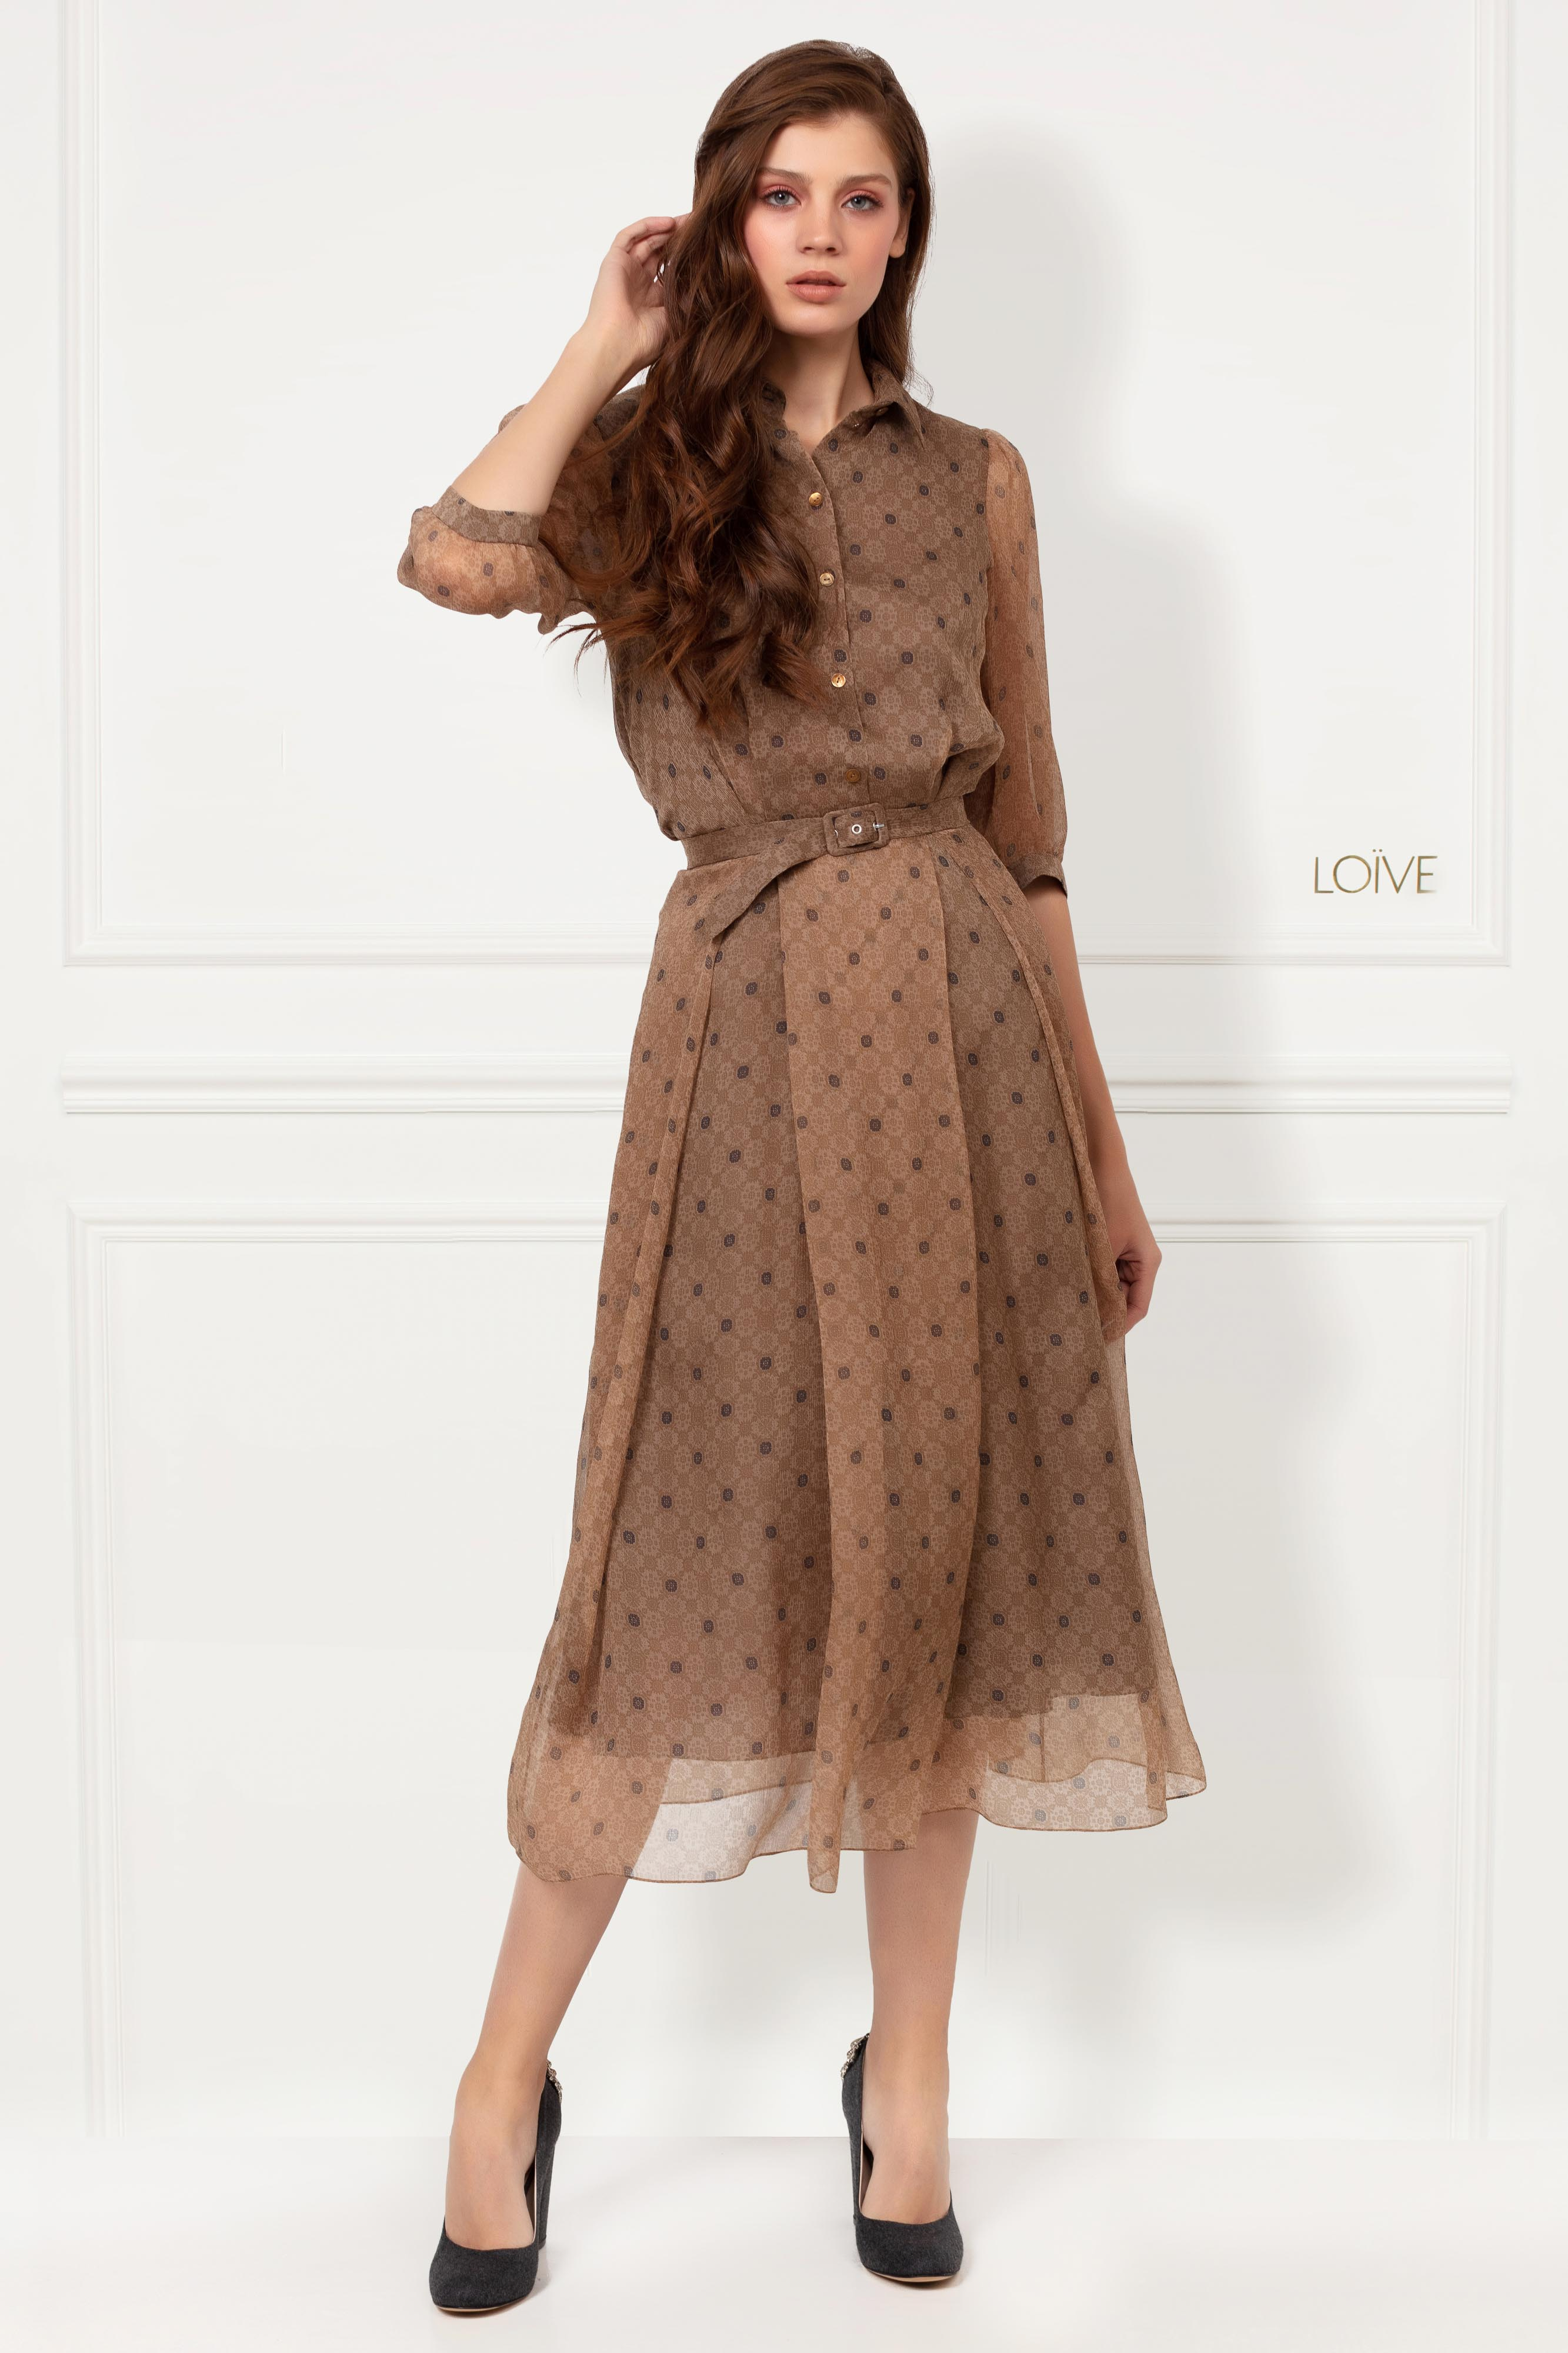 CLAIRE BROWN DRESS